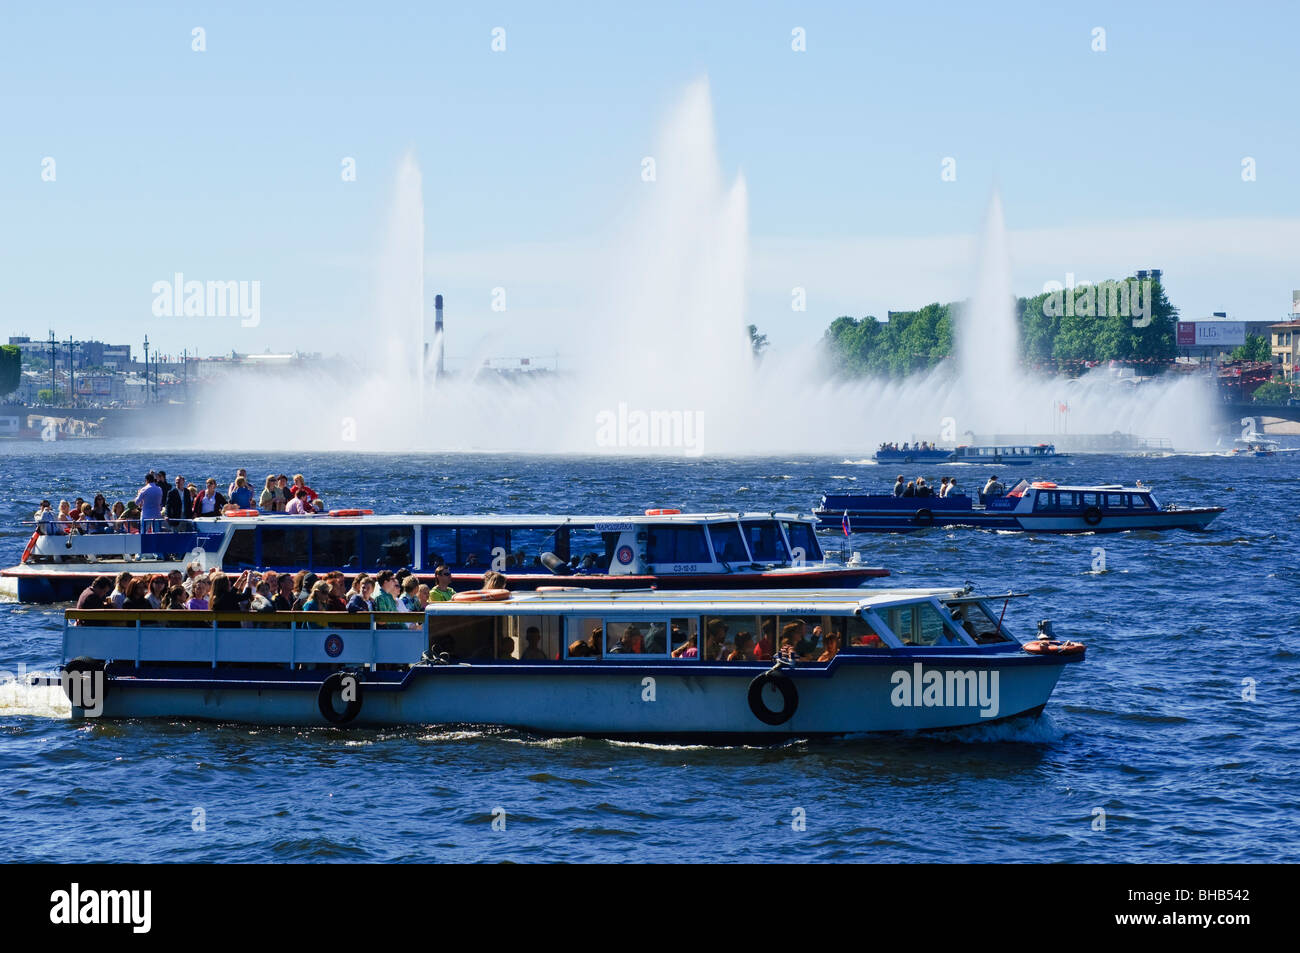 Tourist boats and fountains in the River Neva, St Petersburg, Russia - Stock Image